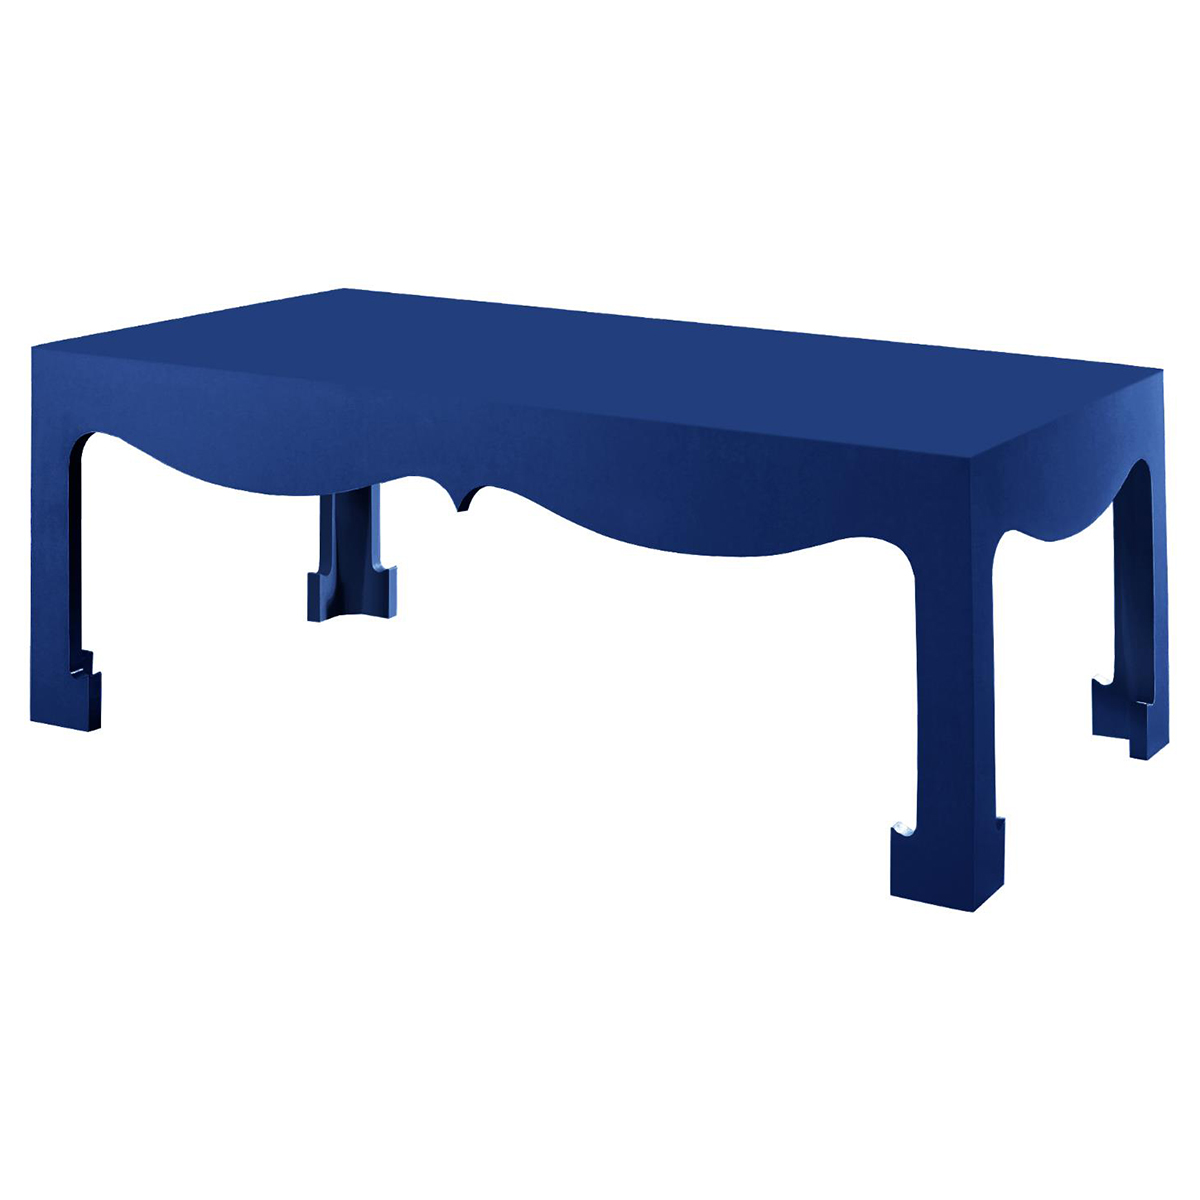 Agra Global Bazaar Blue Lacquered Coffee Table